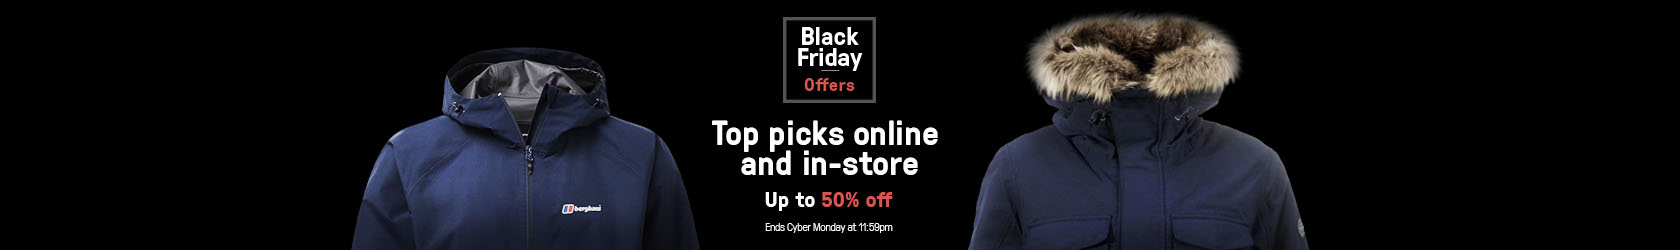 Top Picks Online & In-store